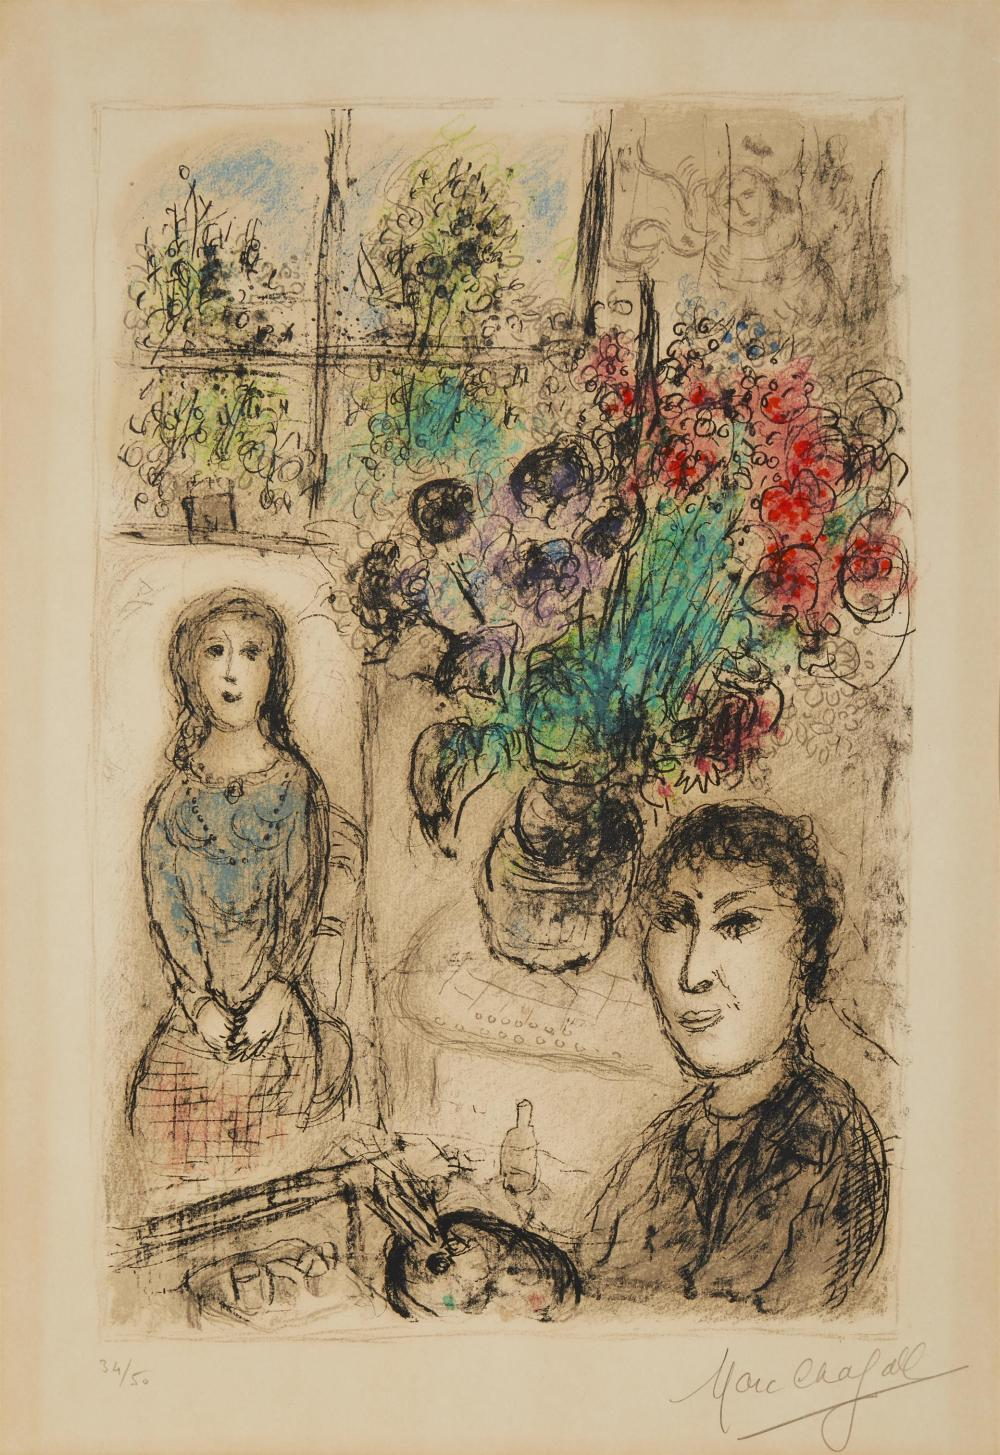 """Marc Chagall, (1887-1985, French), """"Le Chevalet Aux Fleurs,"""" 1976, Color lithograph on cream wove paper under Plexiglas, with full marg"""